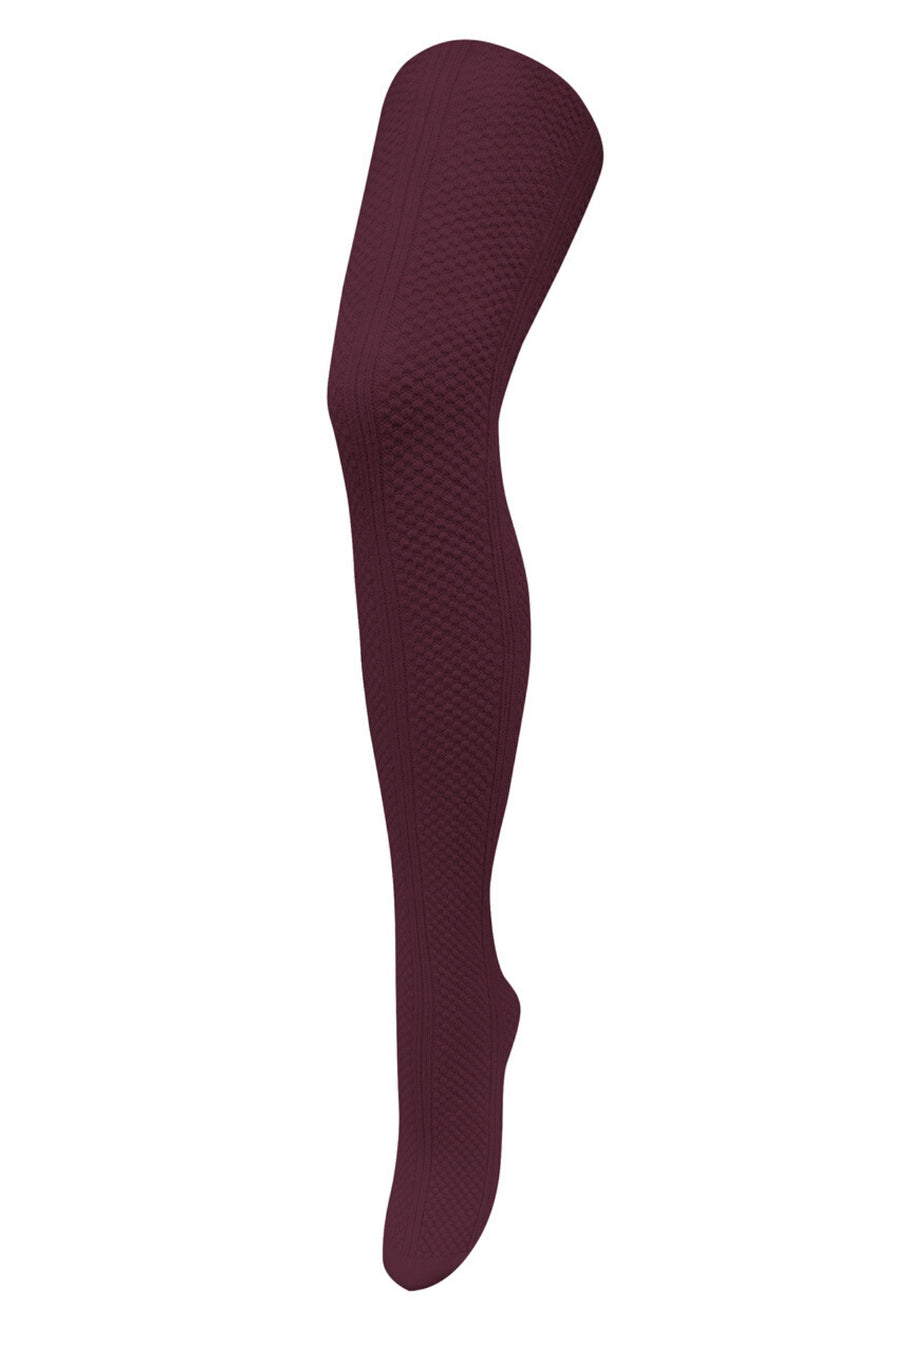 Meadows Full Tights - Shop Online At Mookah - mookah.com.au